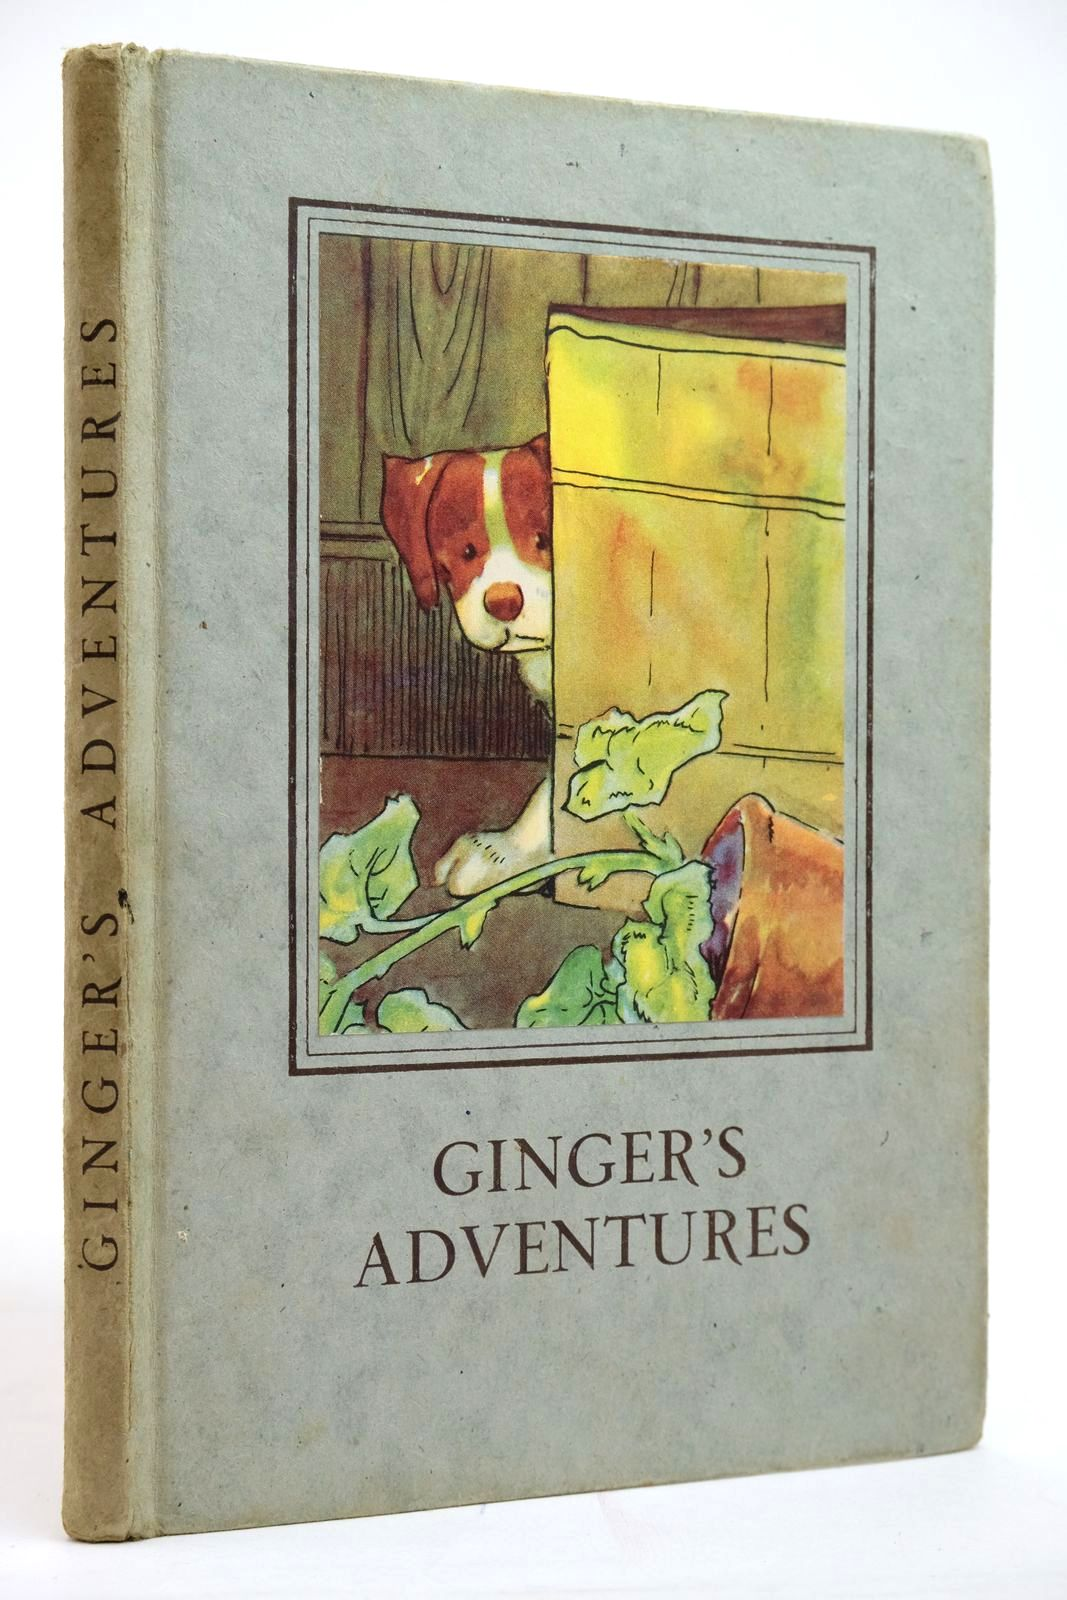 Photo of GINGER'S ADVENTURES written by Macgregor, A.J. Perring, W. illustrated by Macgregor, A.J. published by Wills & Hepworth Ltd. (STOCK CODE: 2135157)  for sale by Stella & Rose's Books